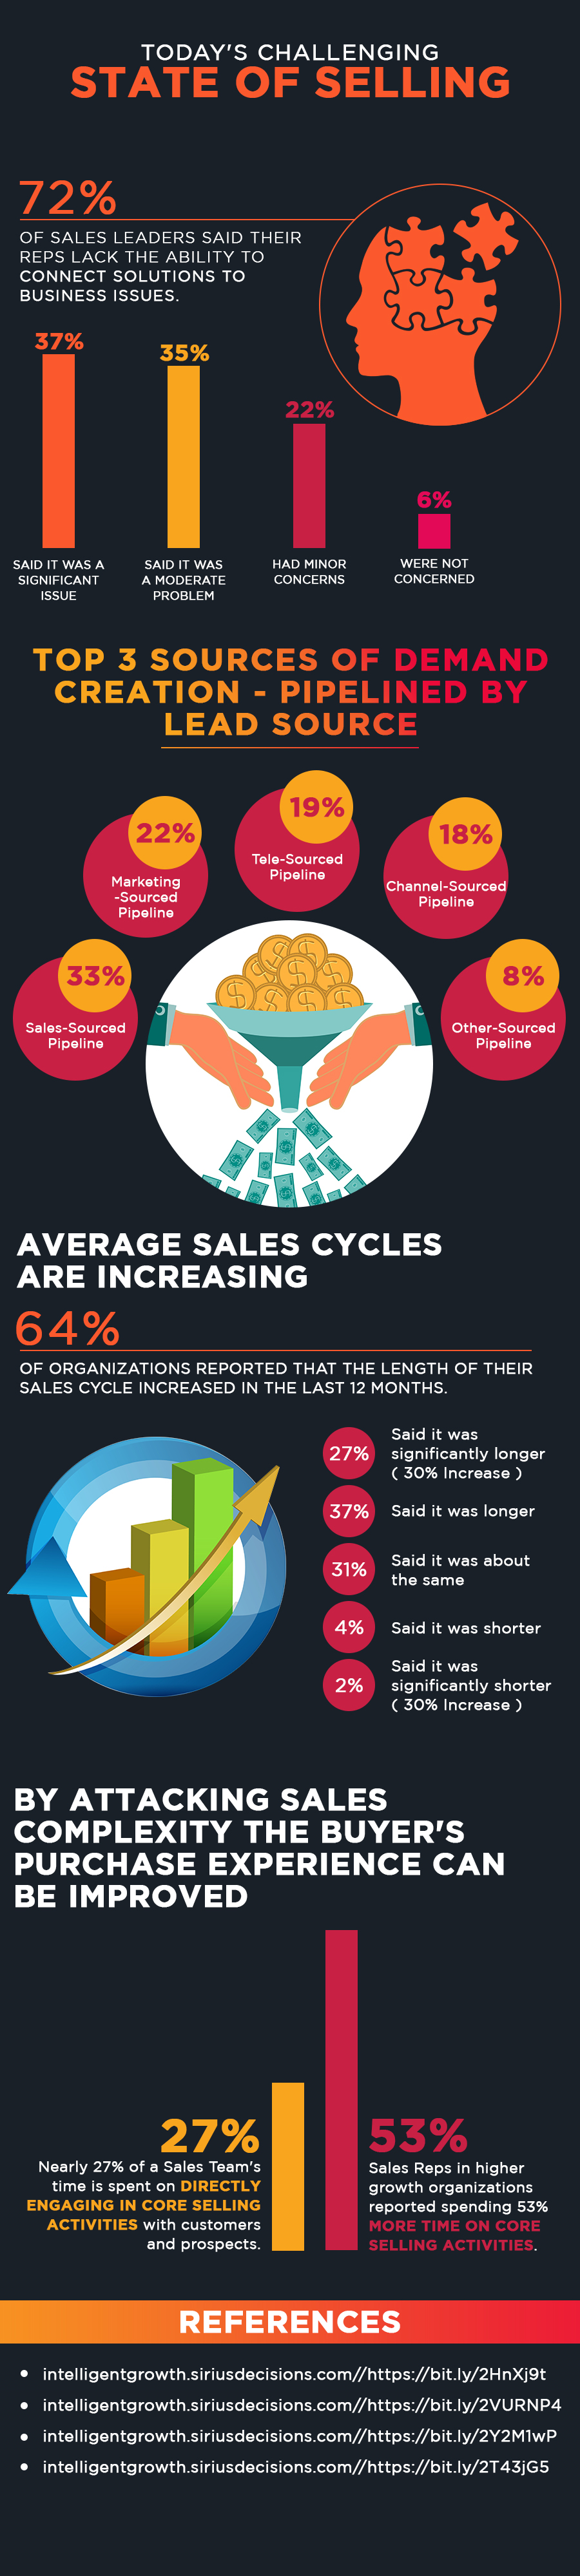 Today's Challenging State of Selling